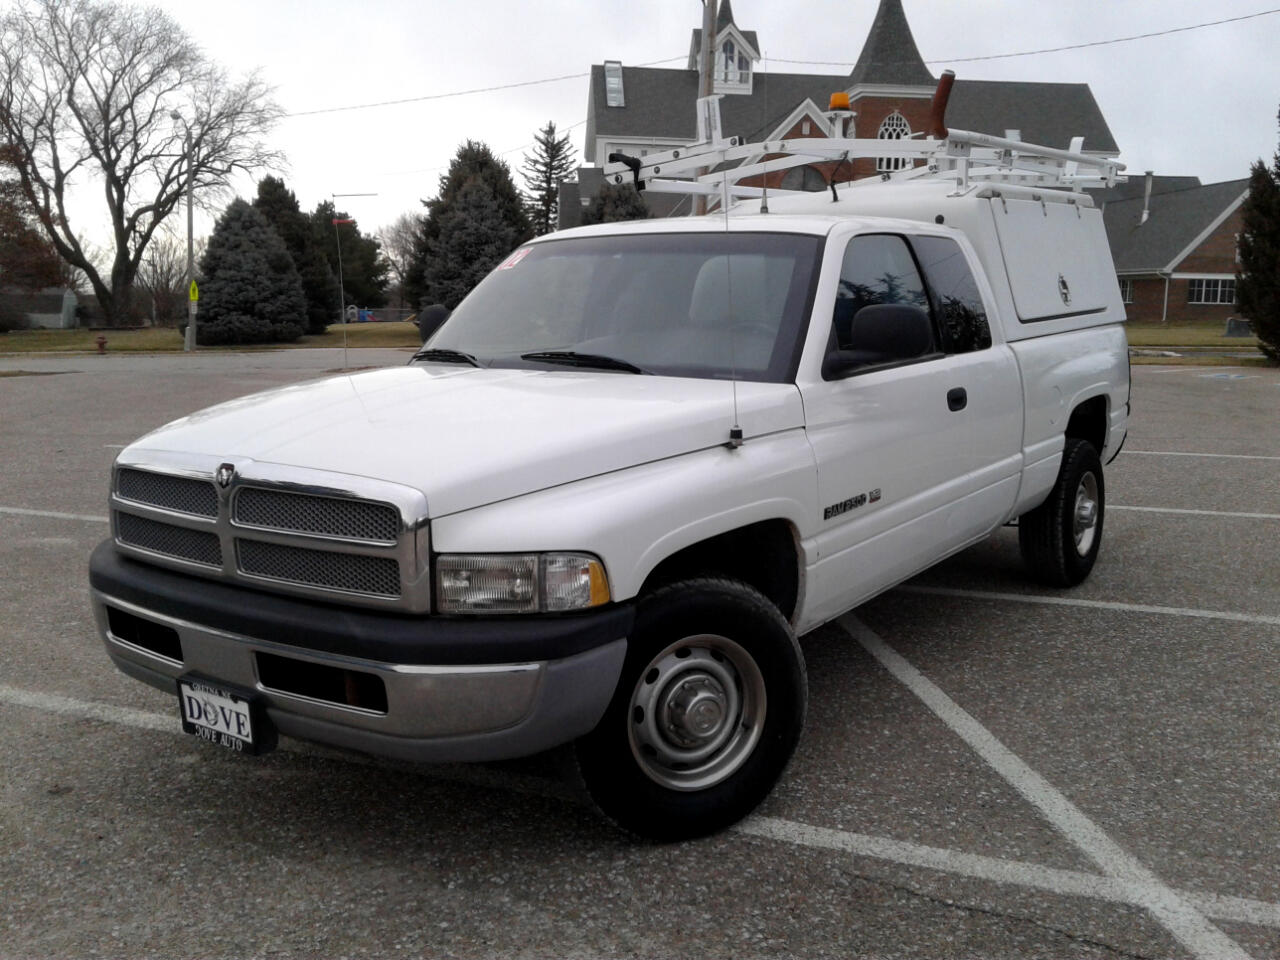 "2002 Dodge Ram 2500 4dr Quad Cab 139"" WB HD"